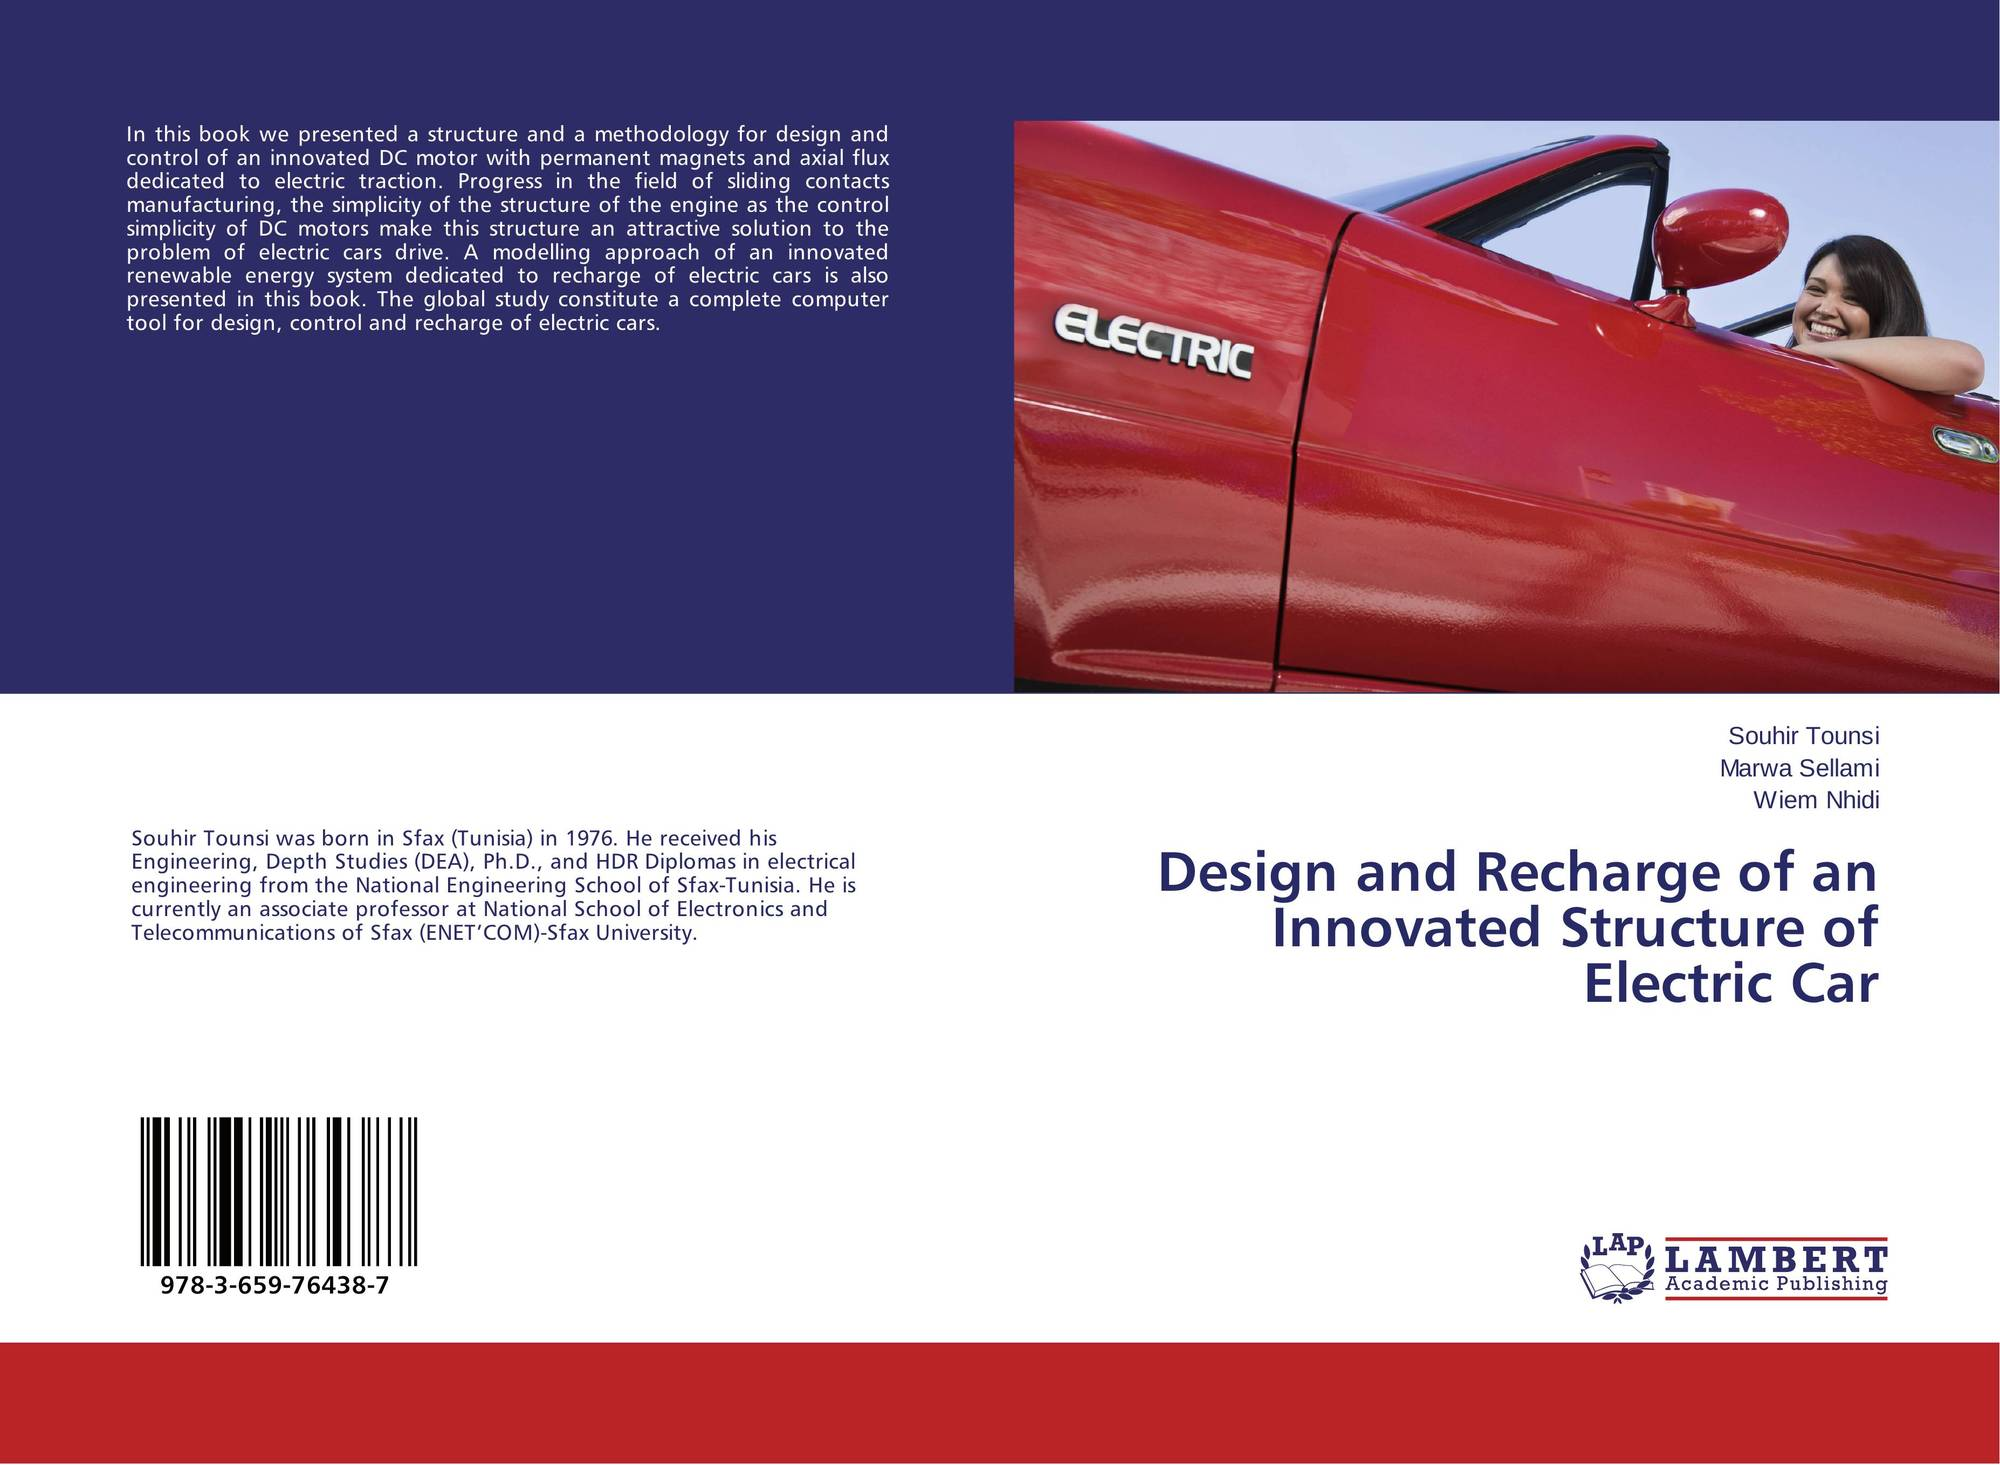 Design And Recharge Of An Innovated Structure Of Electric